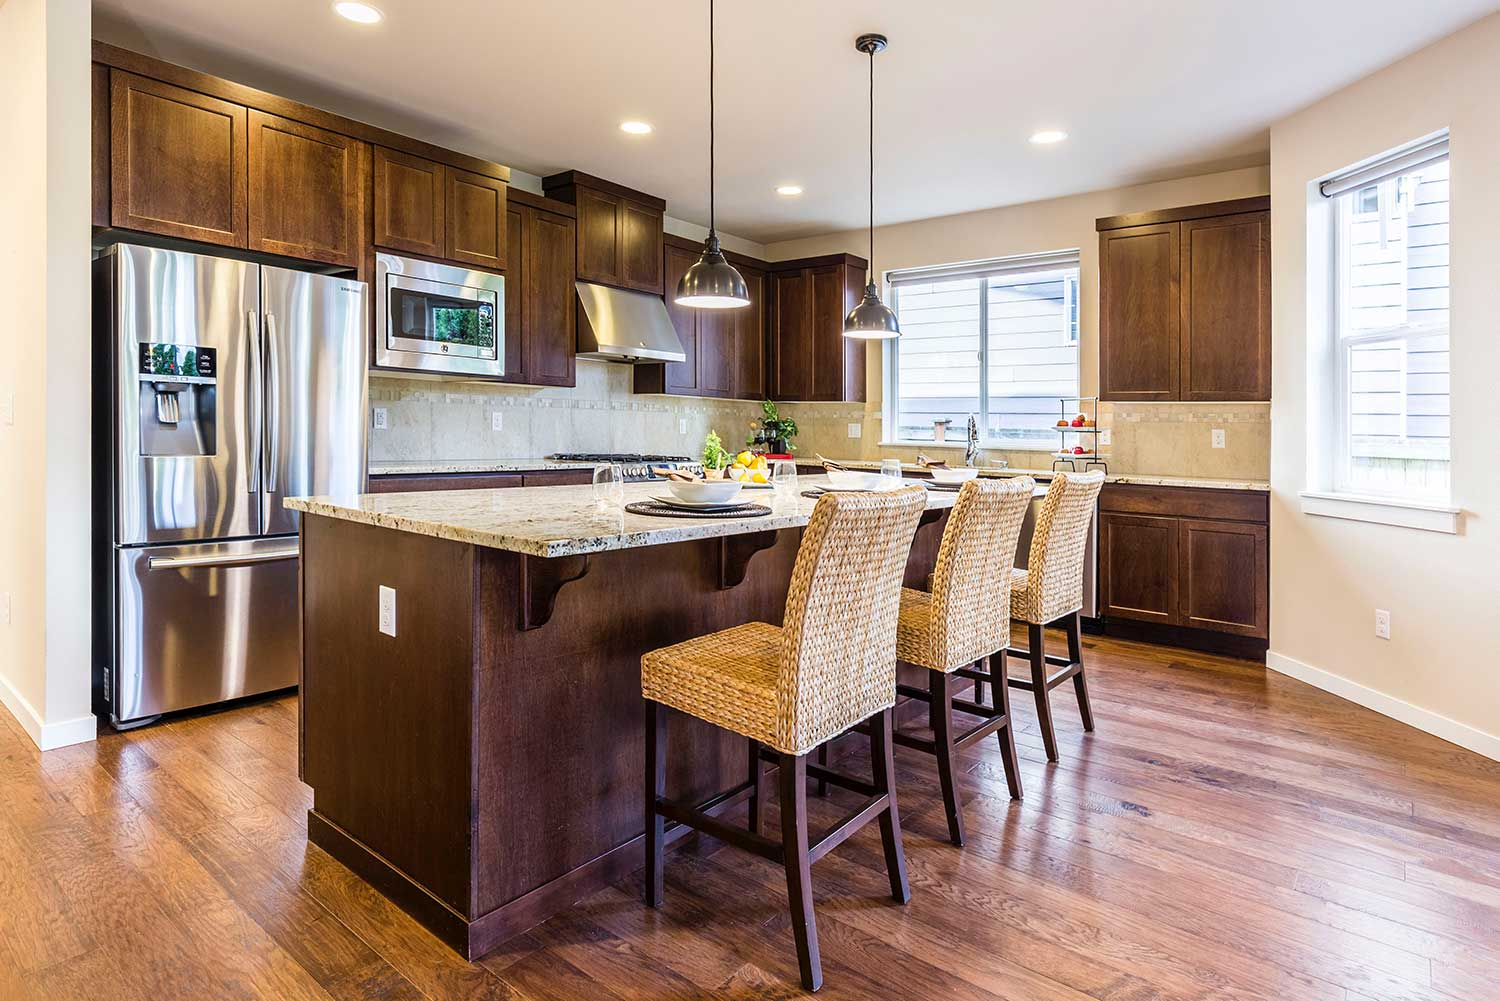 a modern kitchen with dark cabinetry and stone countertops